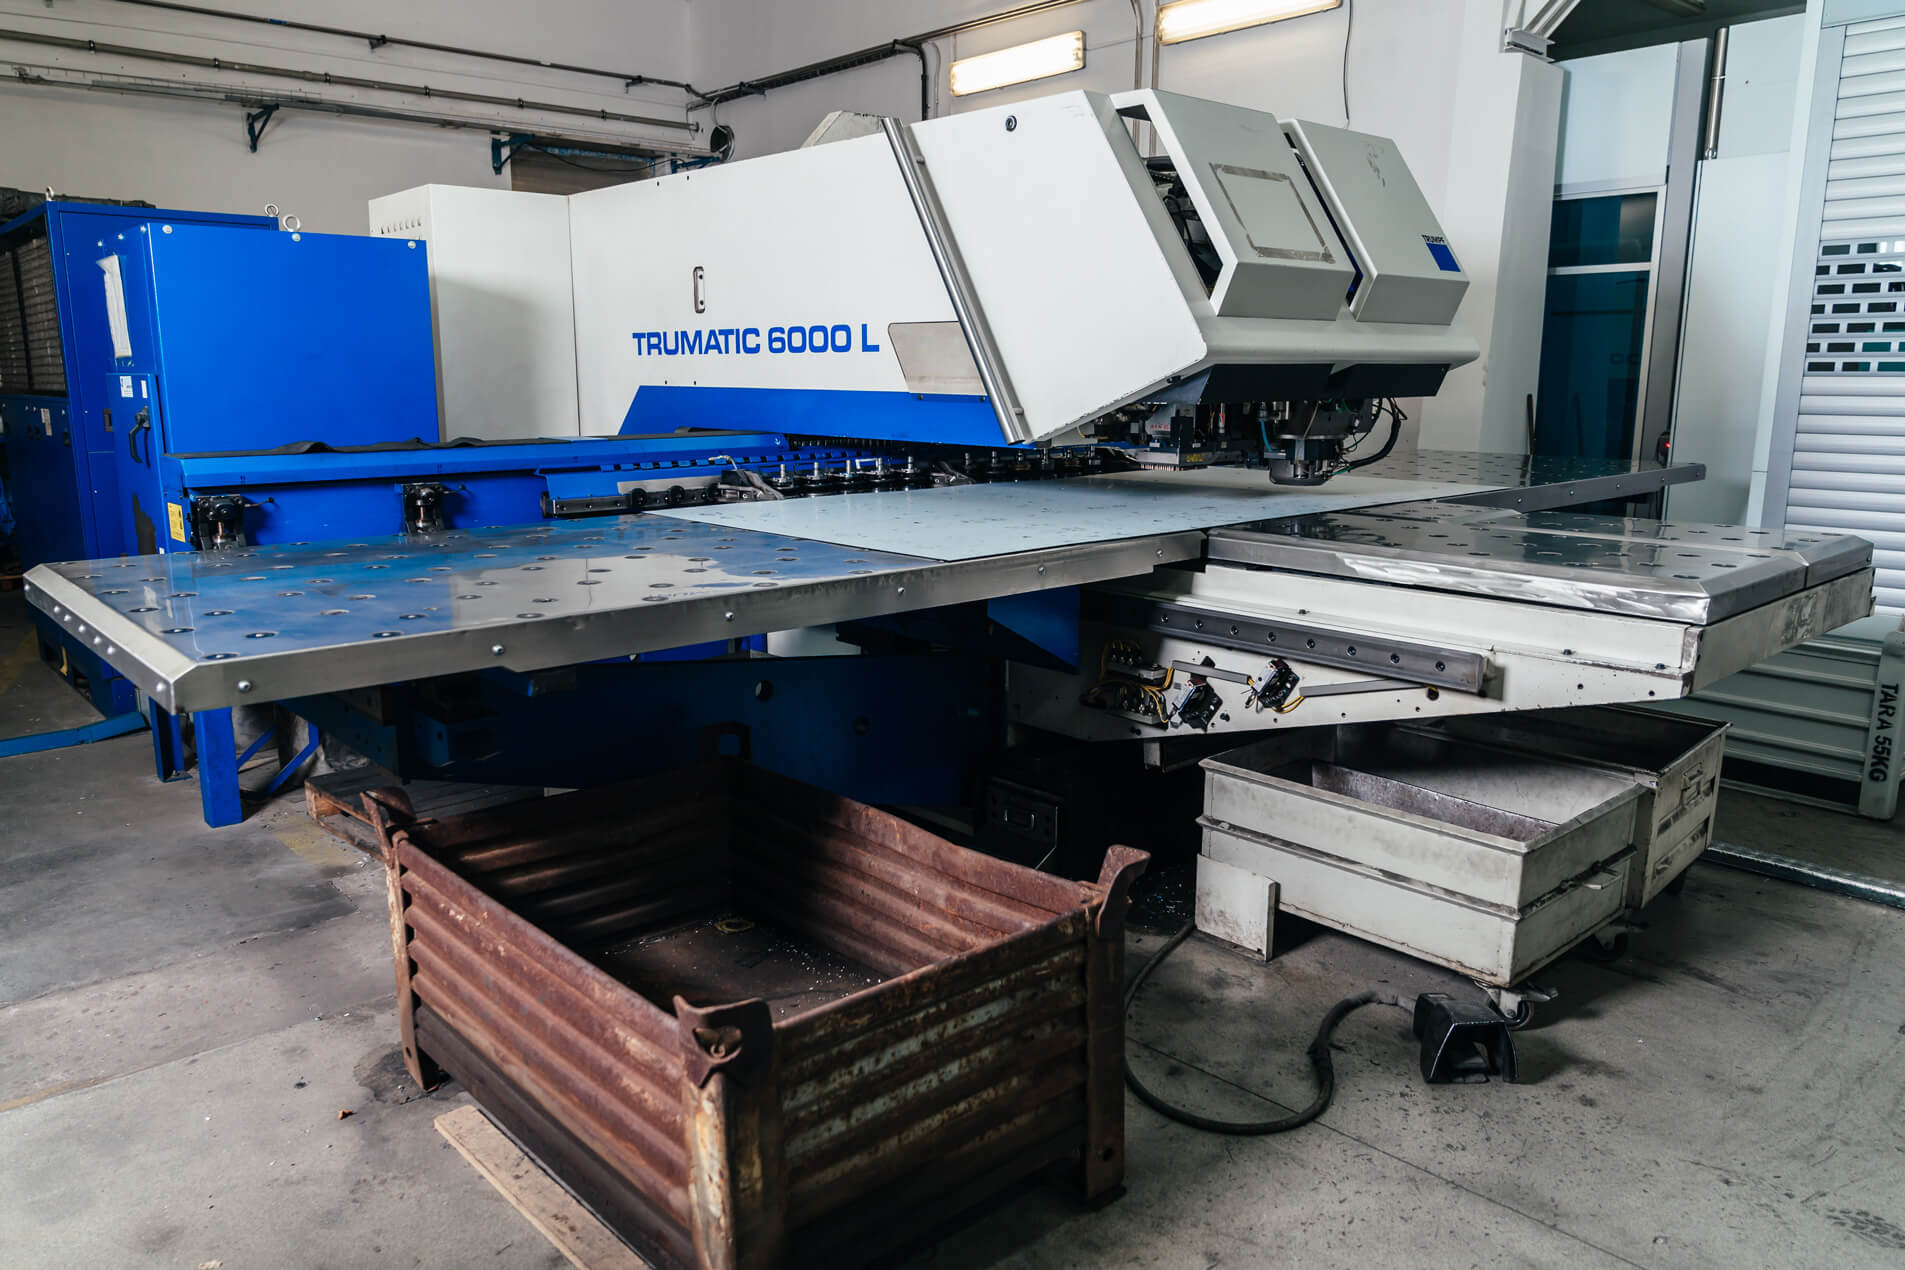 Machine TRUMATIC 6000 L - cutting and laser